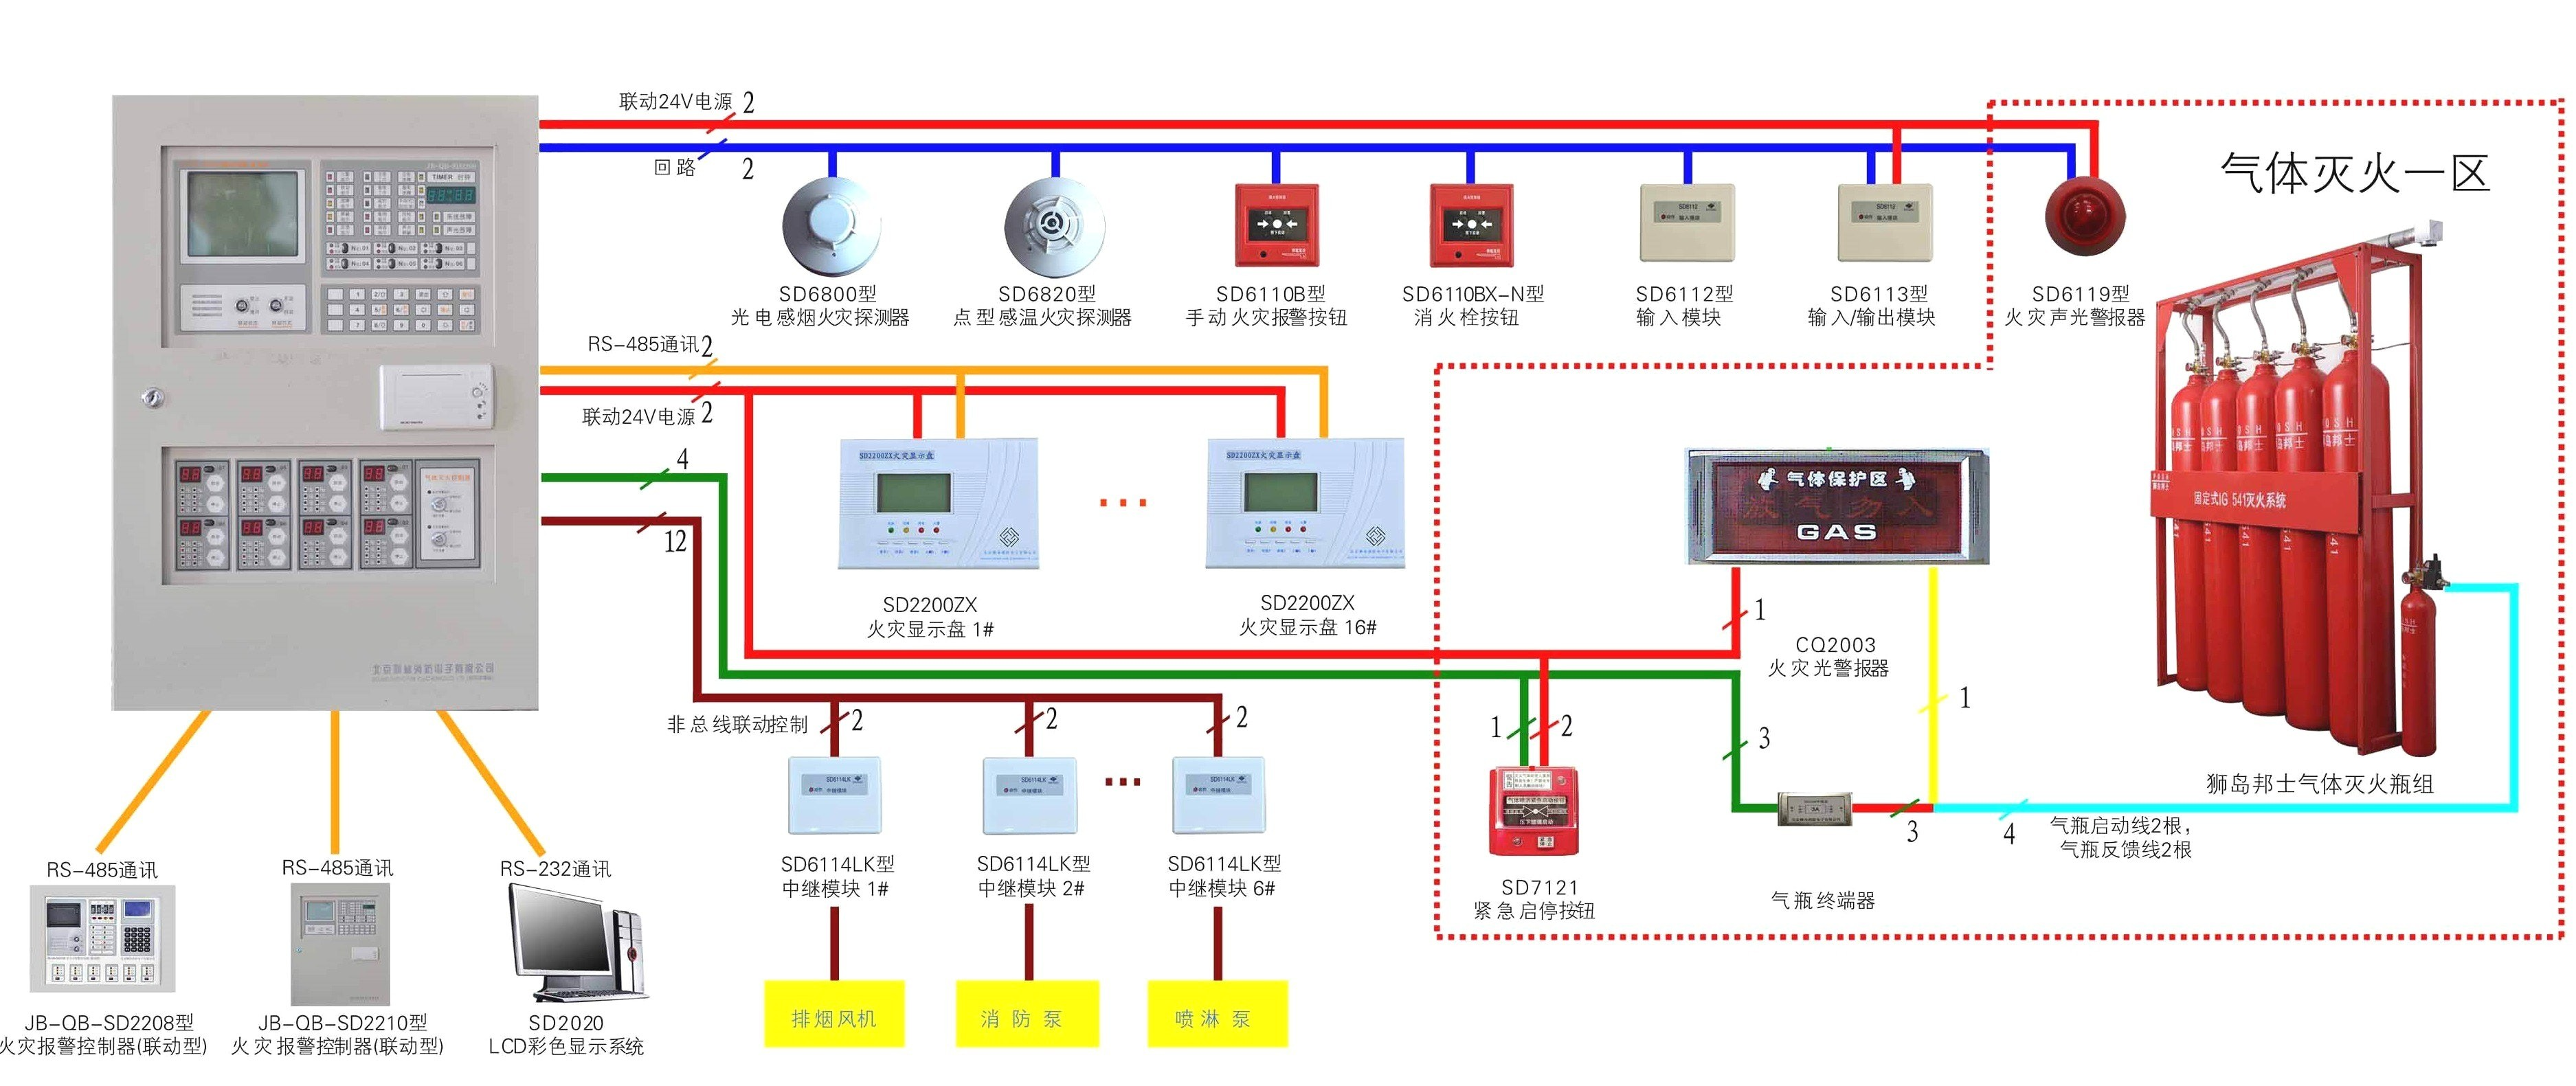 Wiring Security Meritage Homes Diagrams Home Diagram Delphi Alternator 3 Wire Gm Alarm System